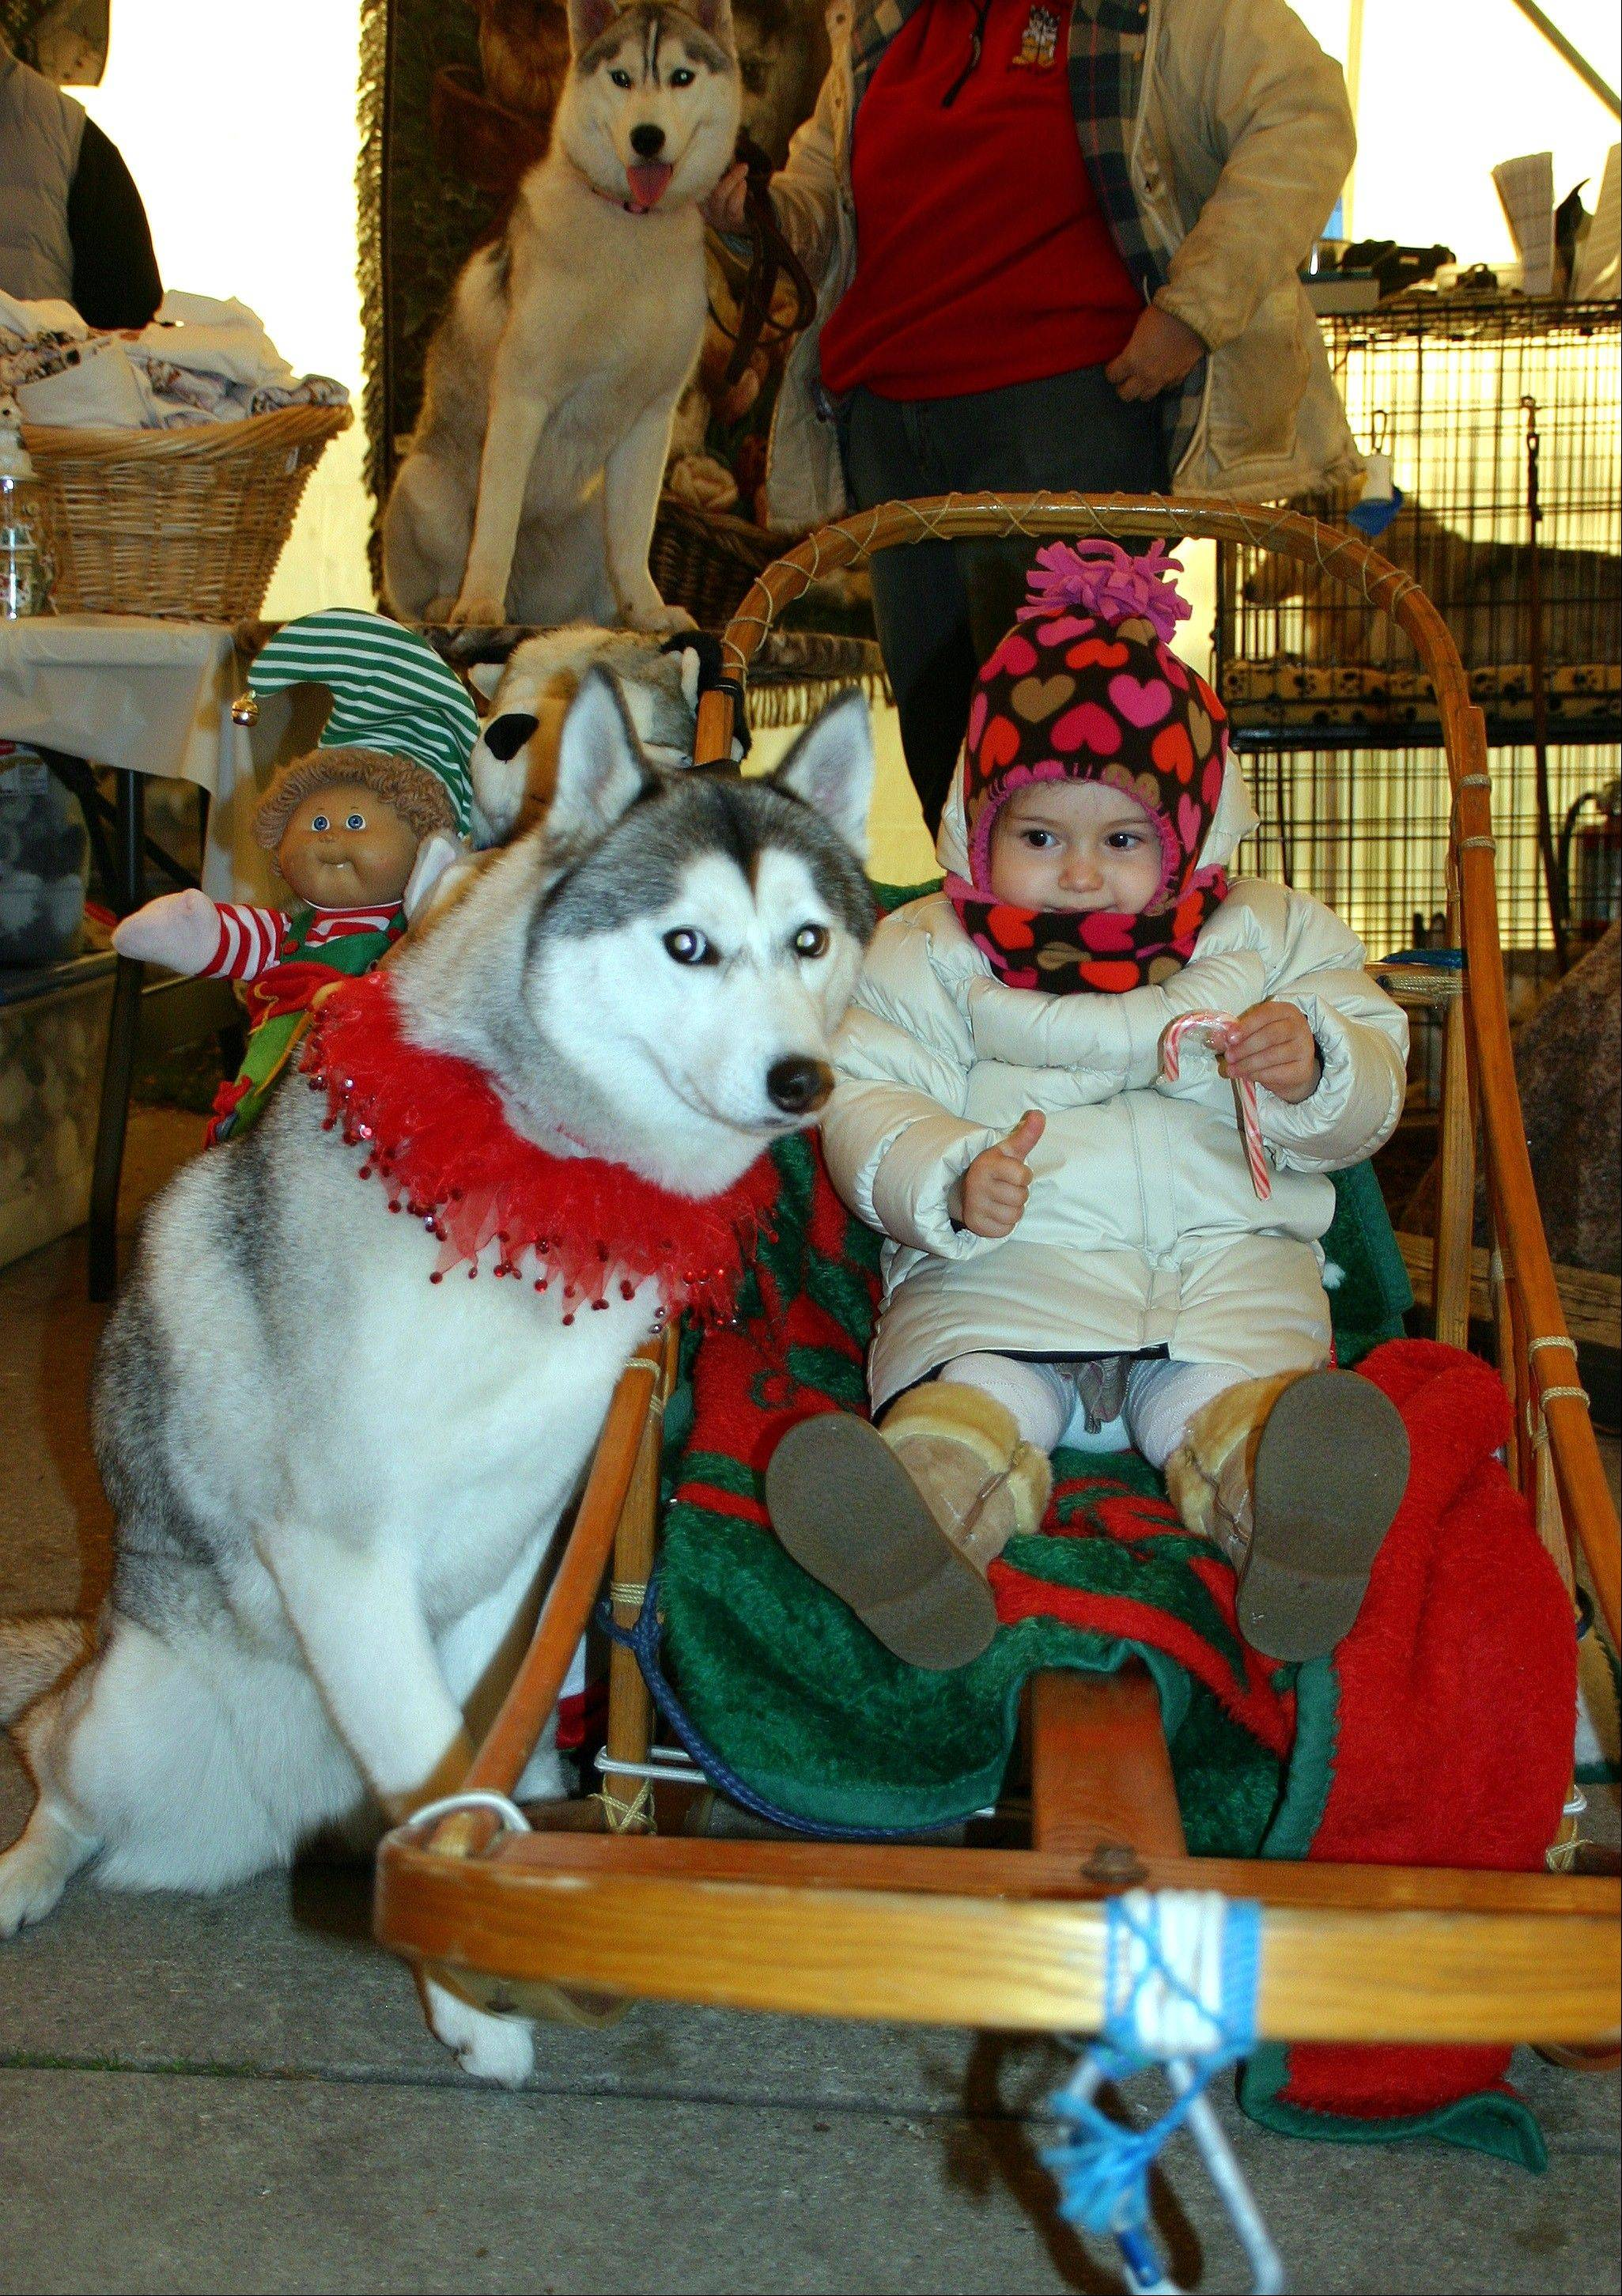 The Siberian Huskies will be on hand for photo opportunities and a talk on the history of the Iditarod.